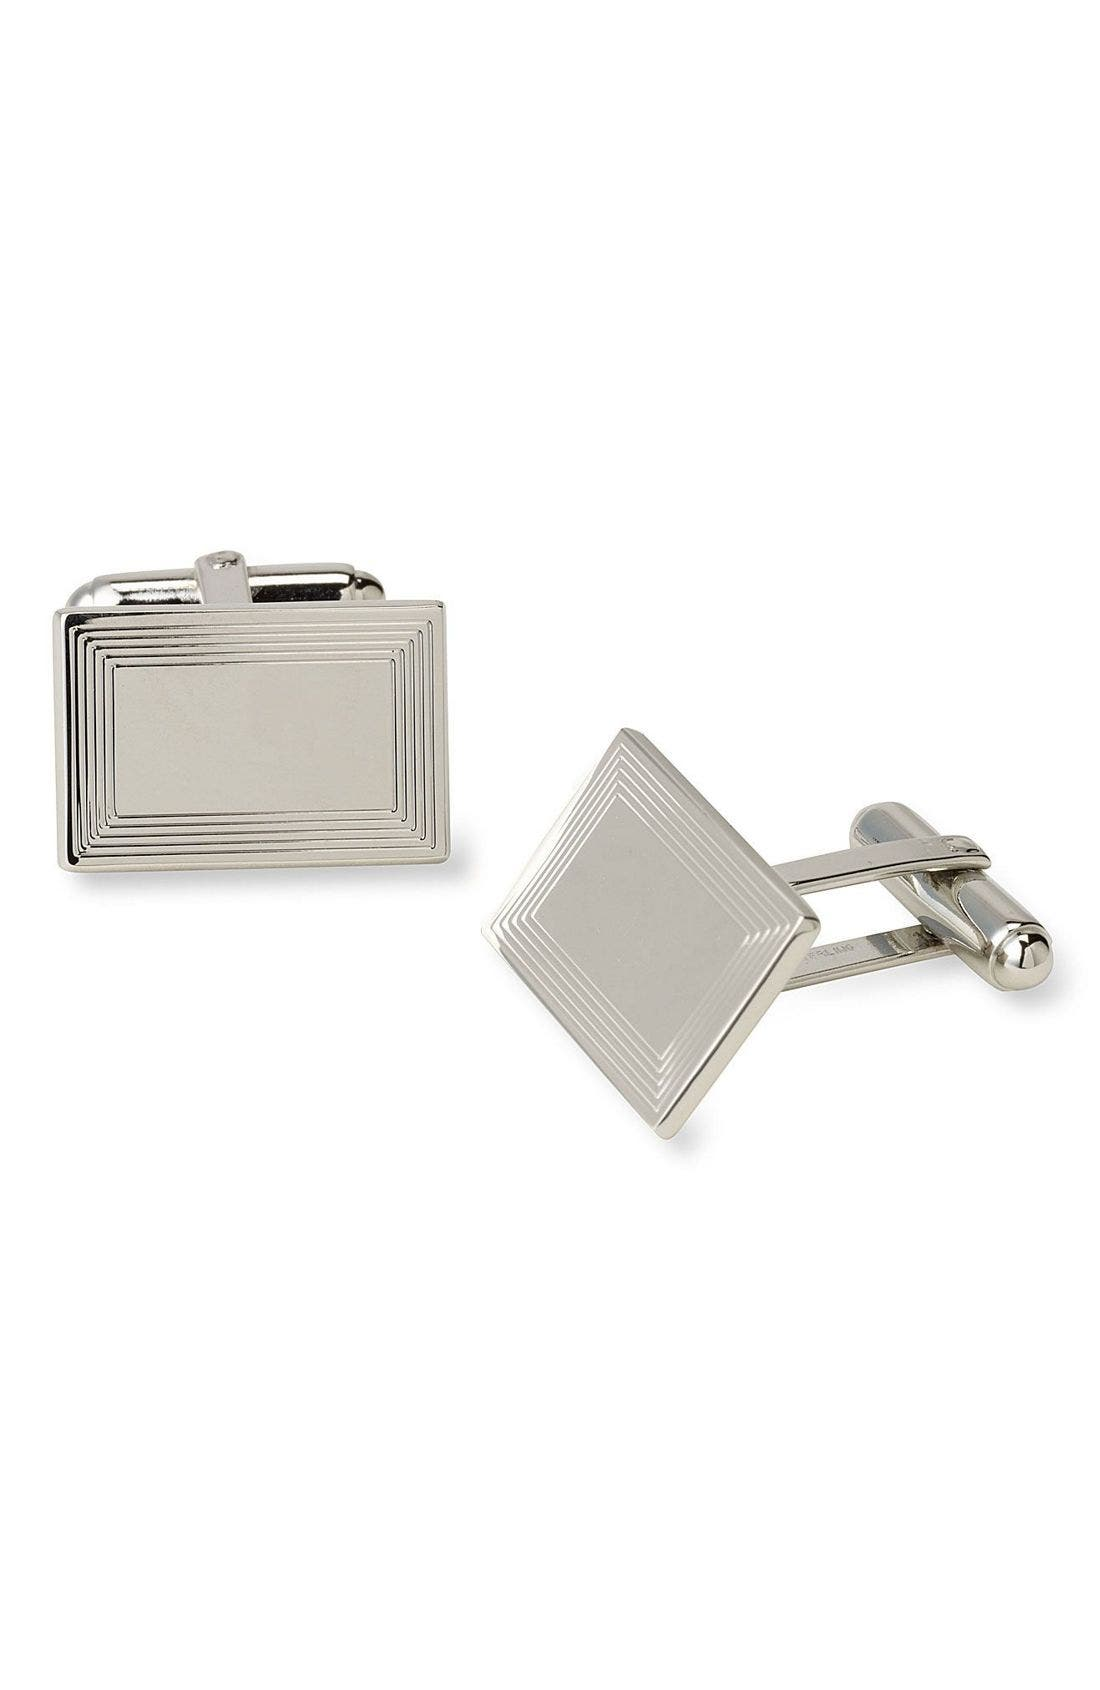 Main Image - David Donahue Cuff Links